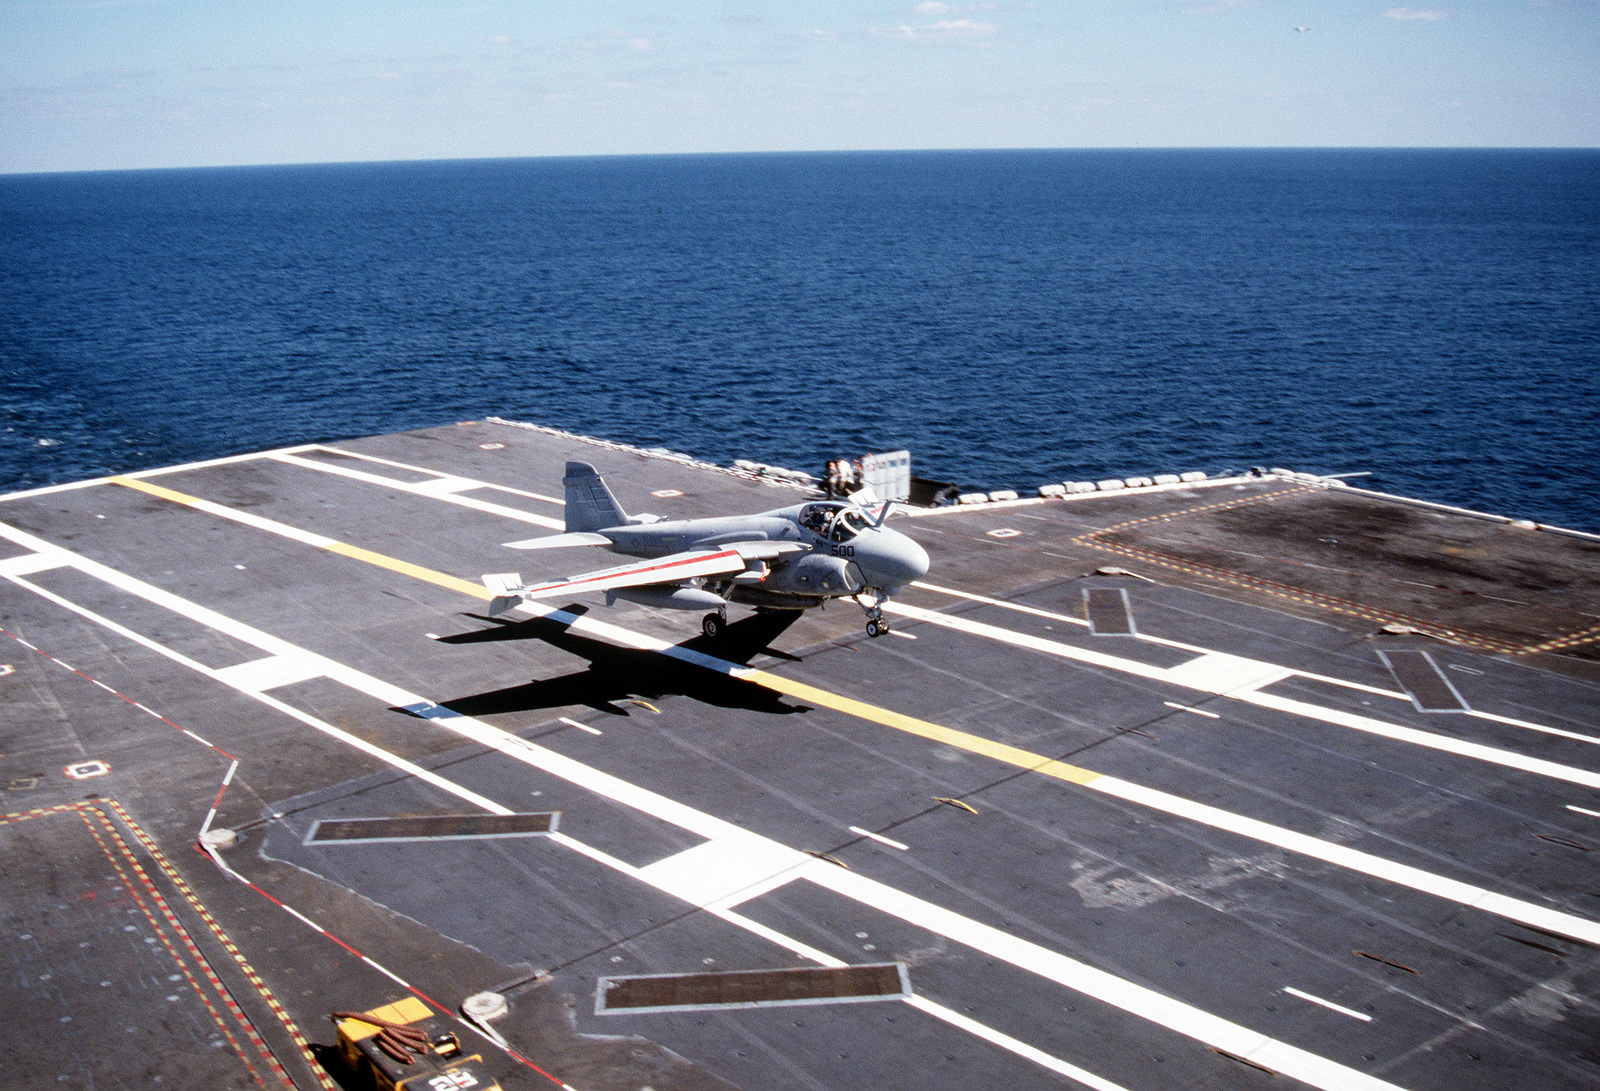 "An Attack Squadron 95 (VA-95) A-6E Intruder aircraft lands on the flight deck of the nuclear-powered aircraft carrier USS ABRAHAM LINCOLN (CVN-72). The aircraft, piloted by air wing commander CAPT. ""Spider"" Webb, is the first plane of Carrier Air Wing II (CVW-11) to land aboard the ship"